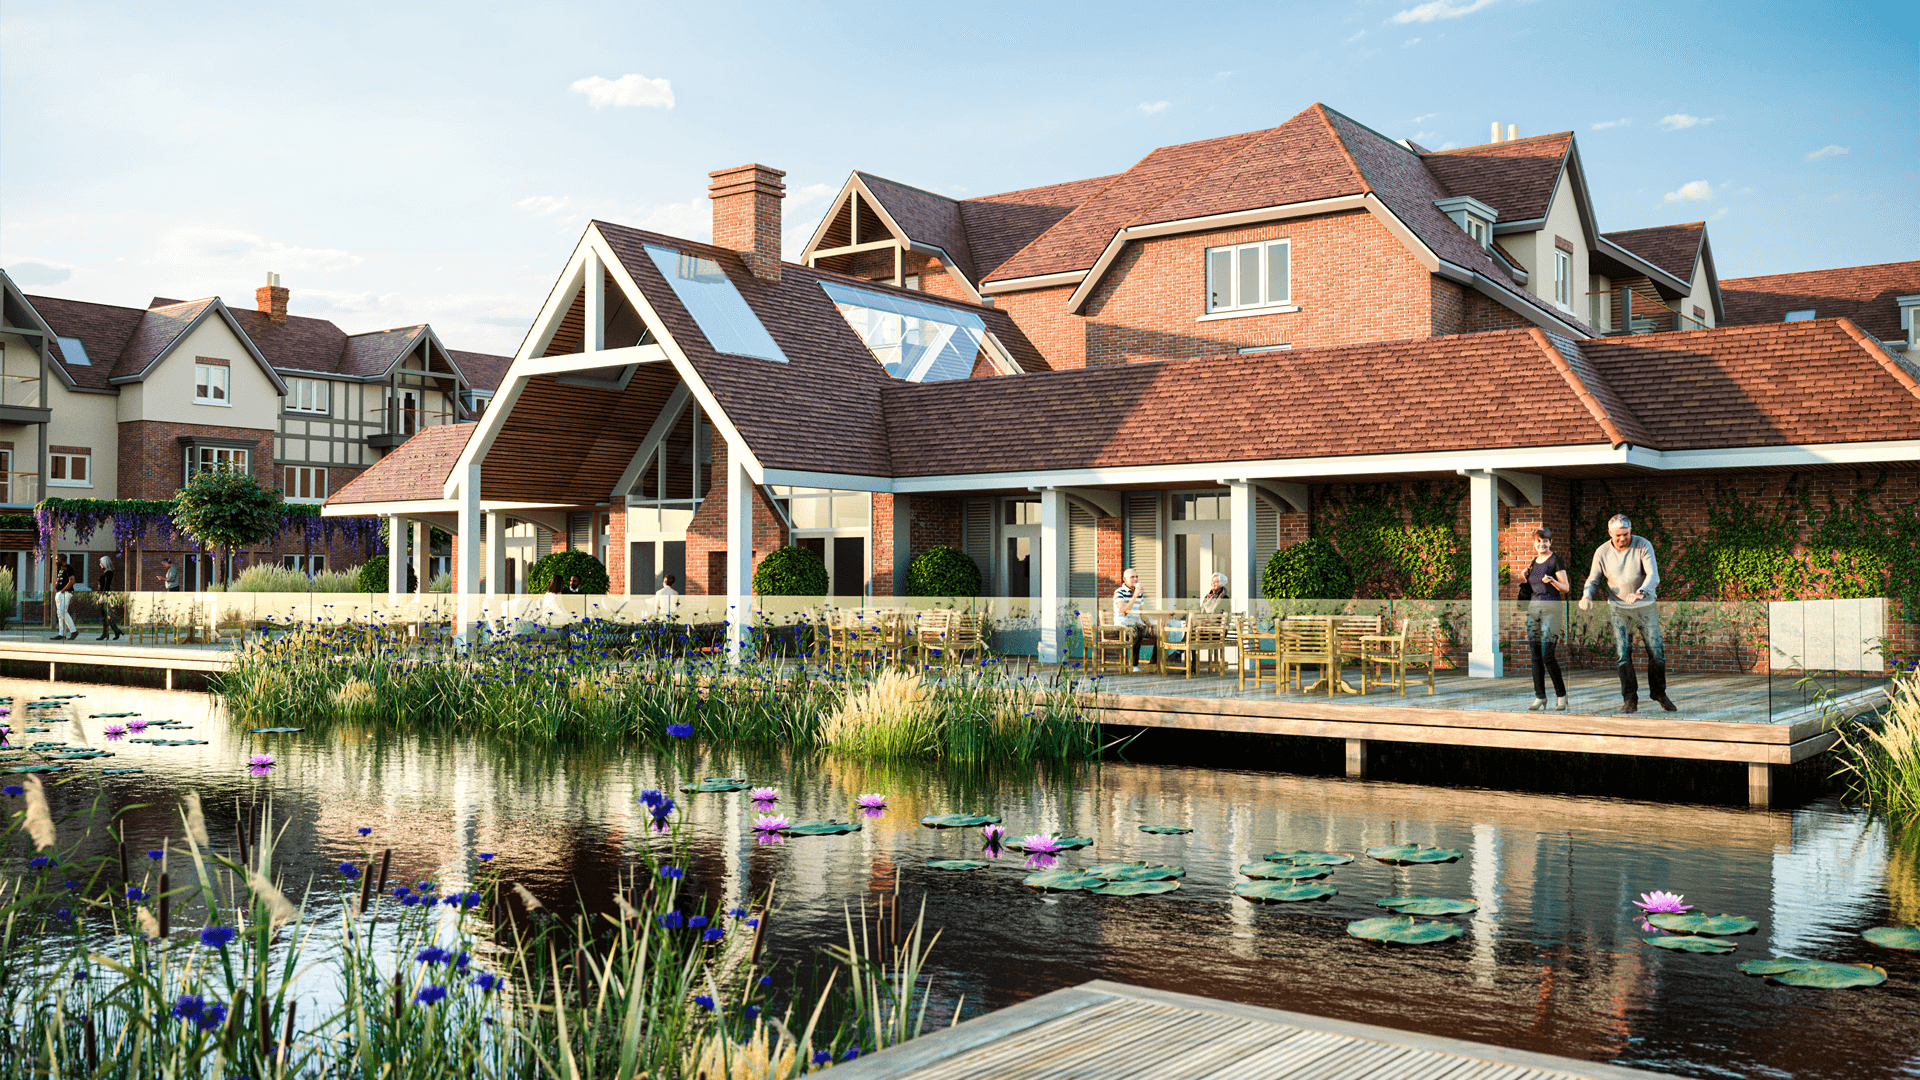 Architectural - Caddington Retirement Community, Bedfordshire